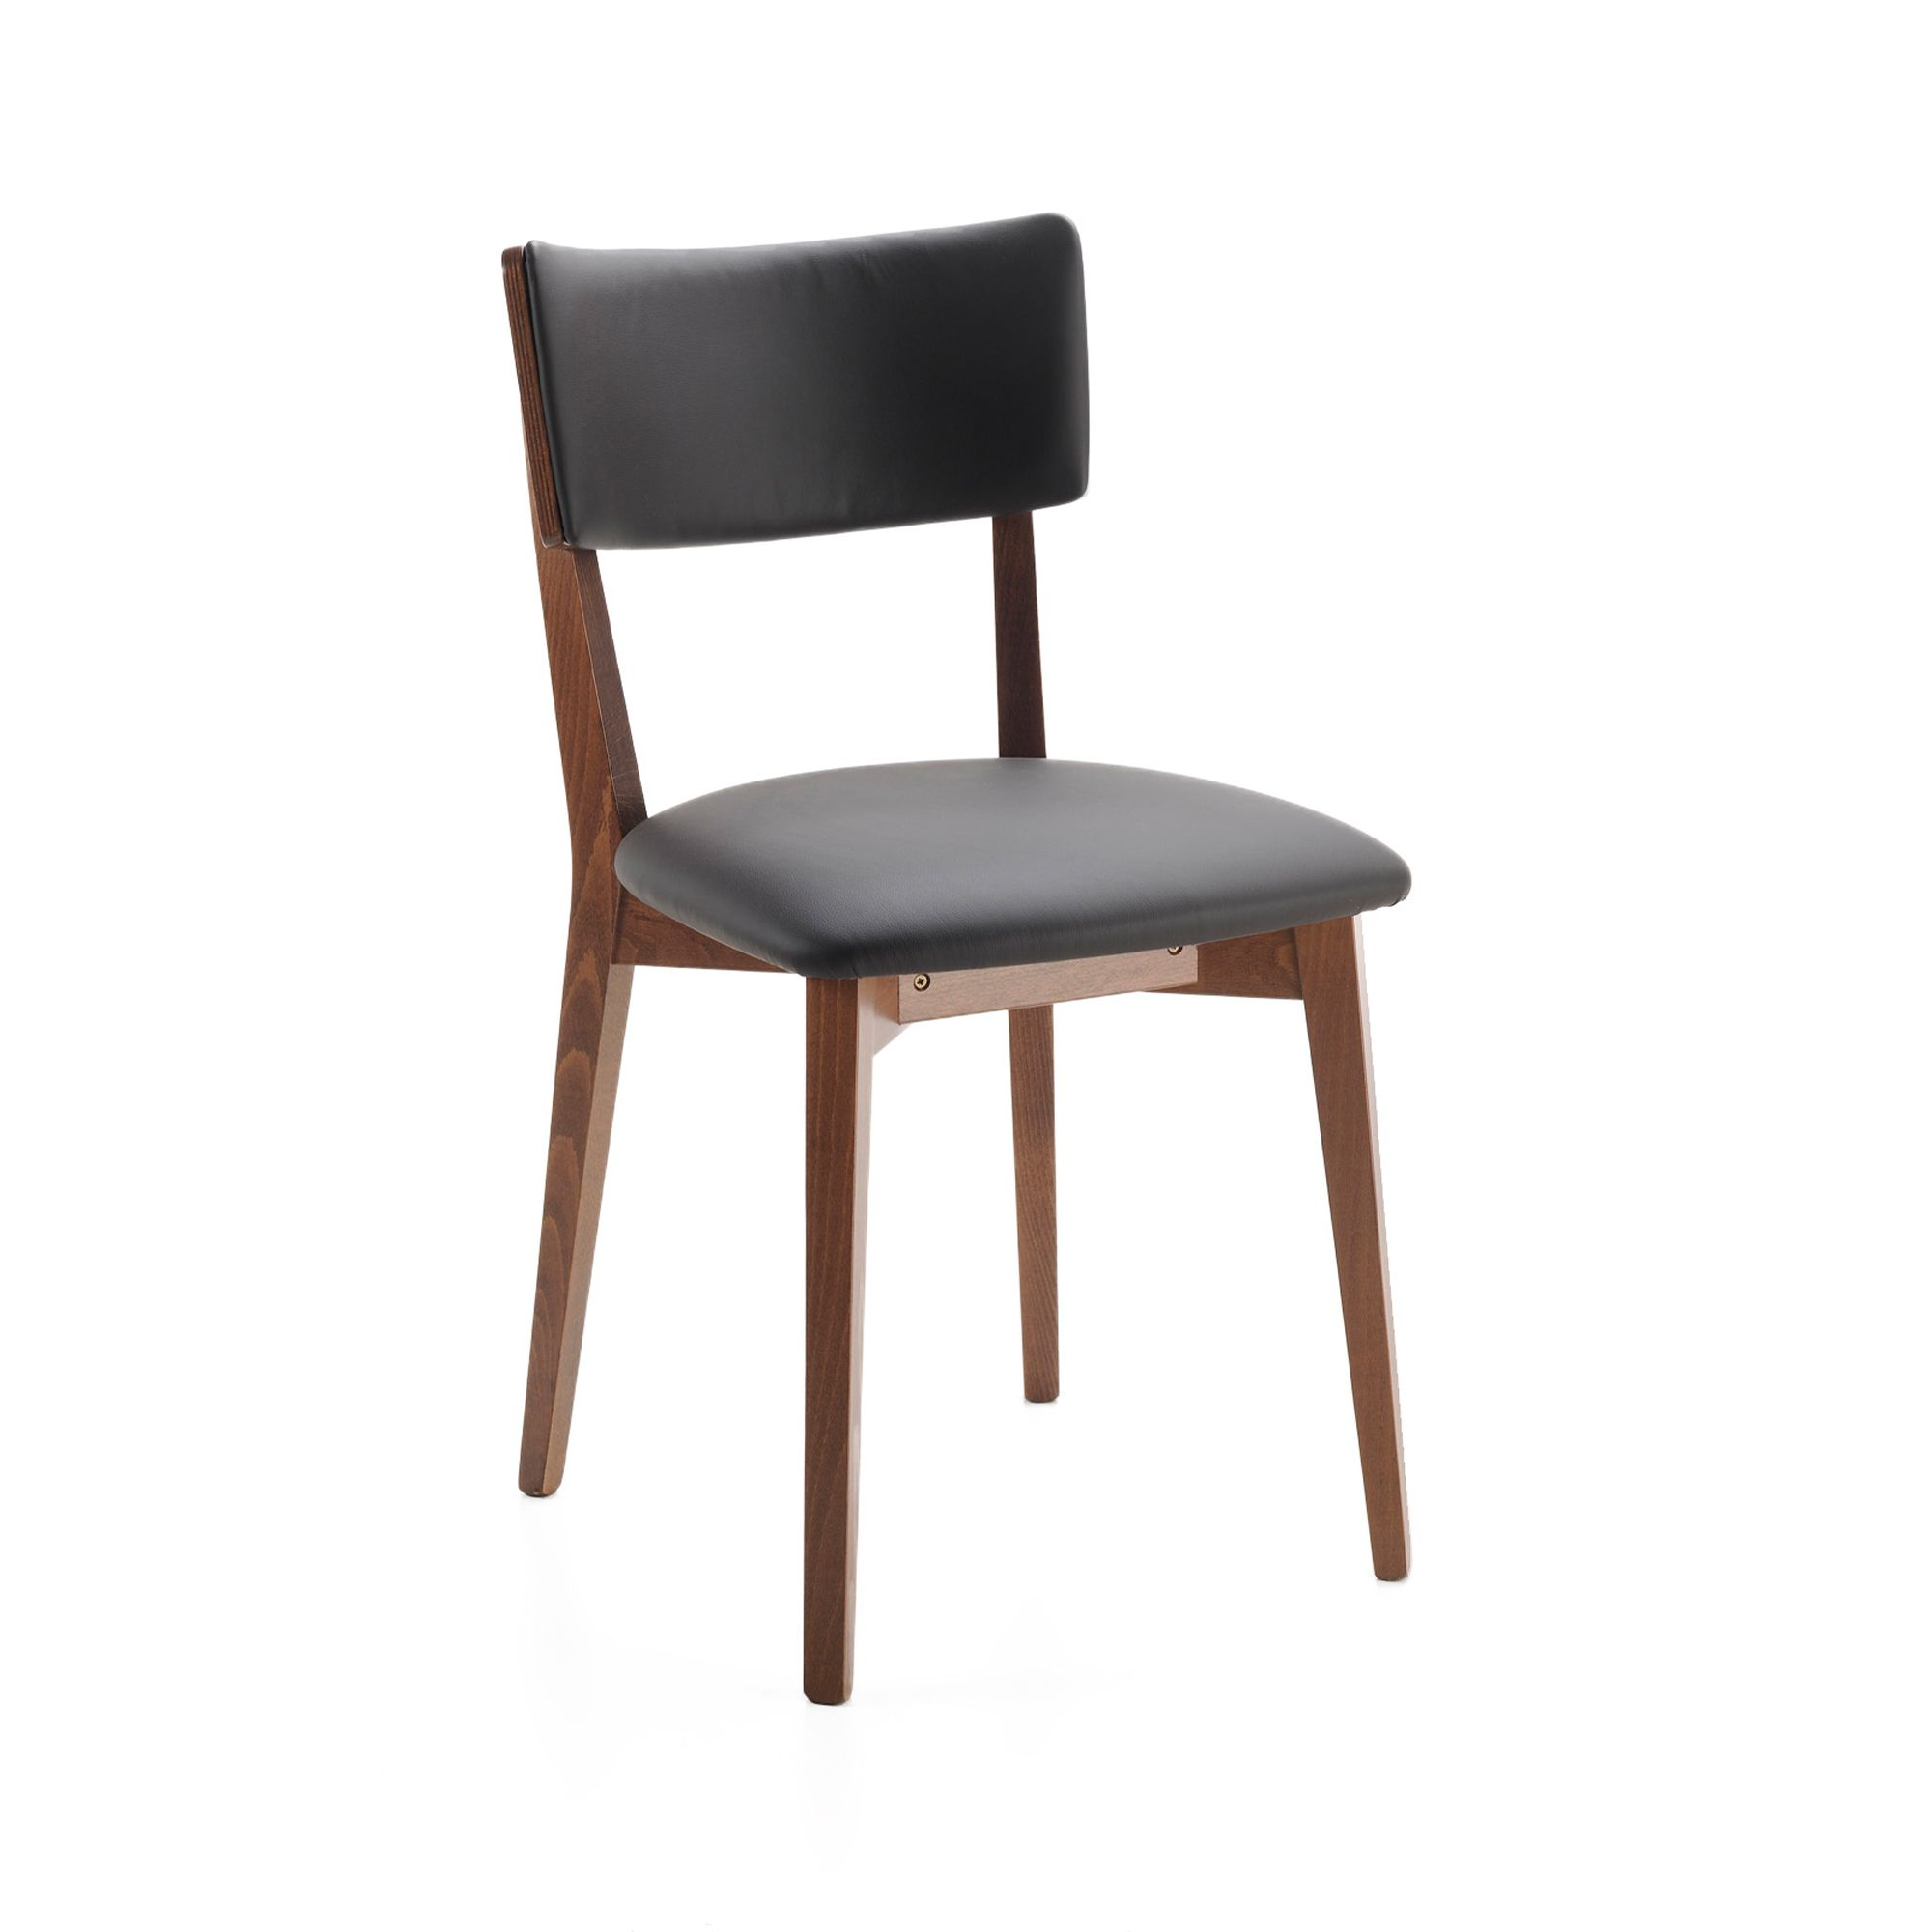 Model 869 chair in modern style